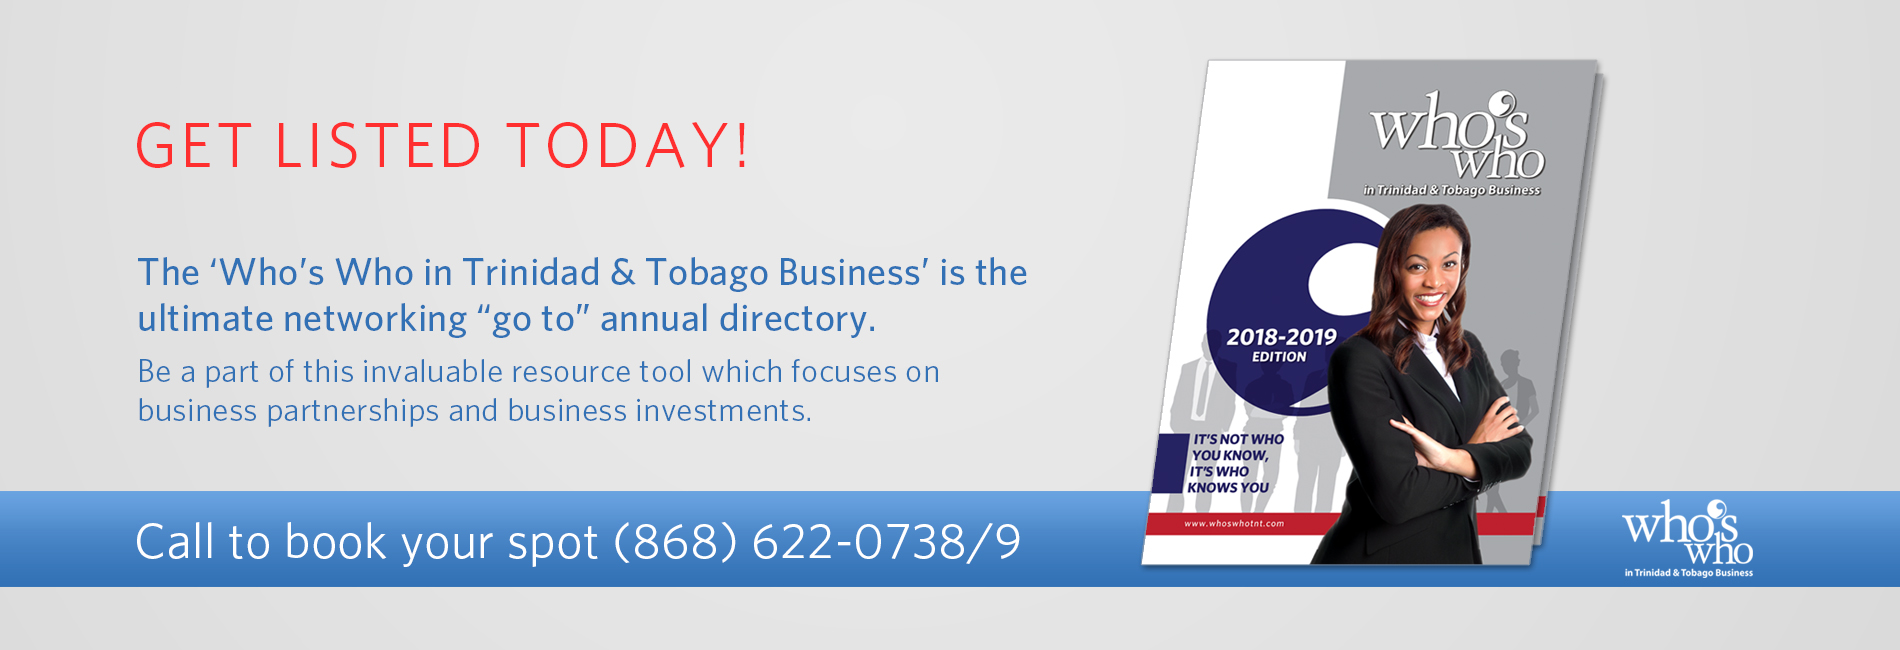 Get listed in Trinidad Business Directory